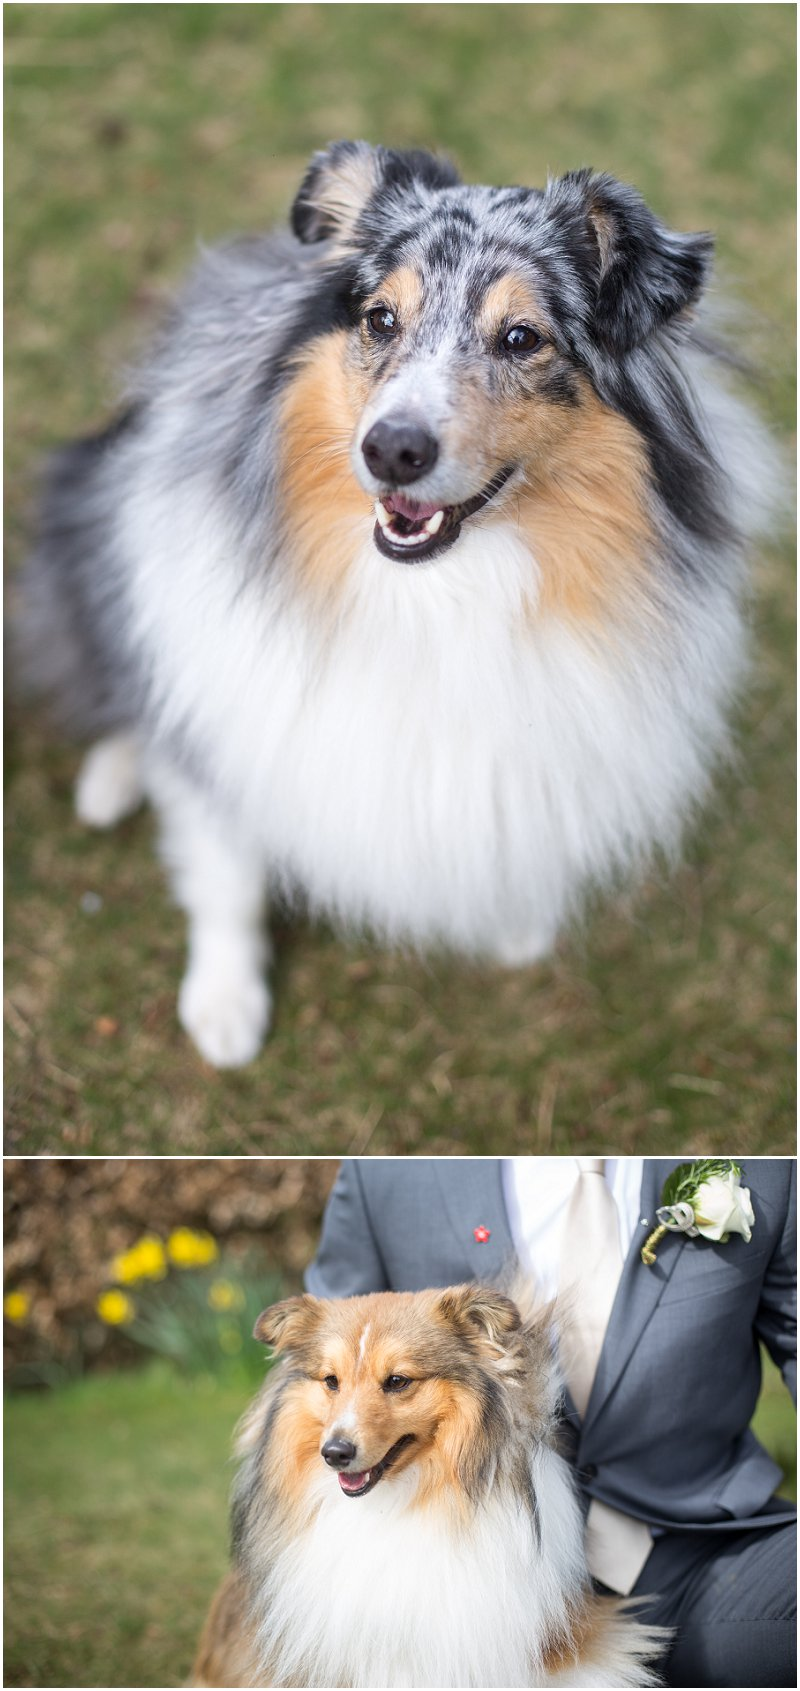 Bride and Groom's babies - sheltie dogs